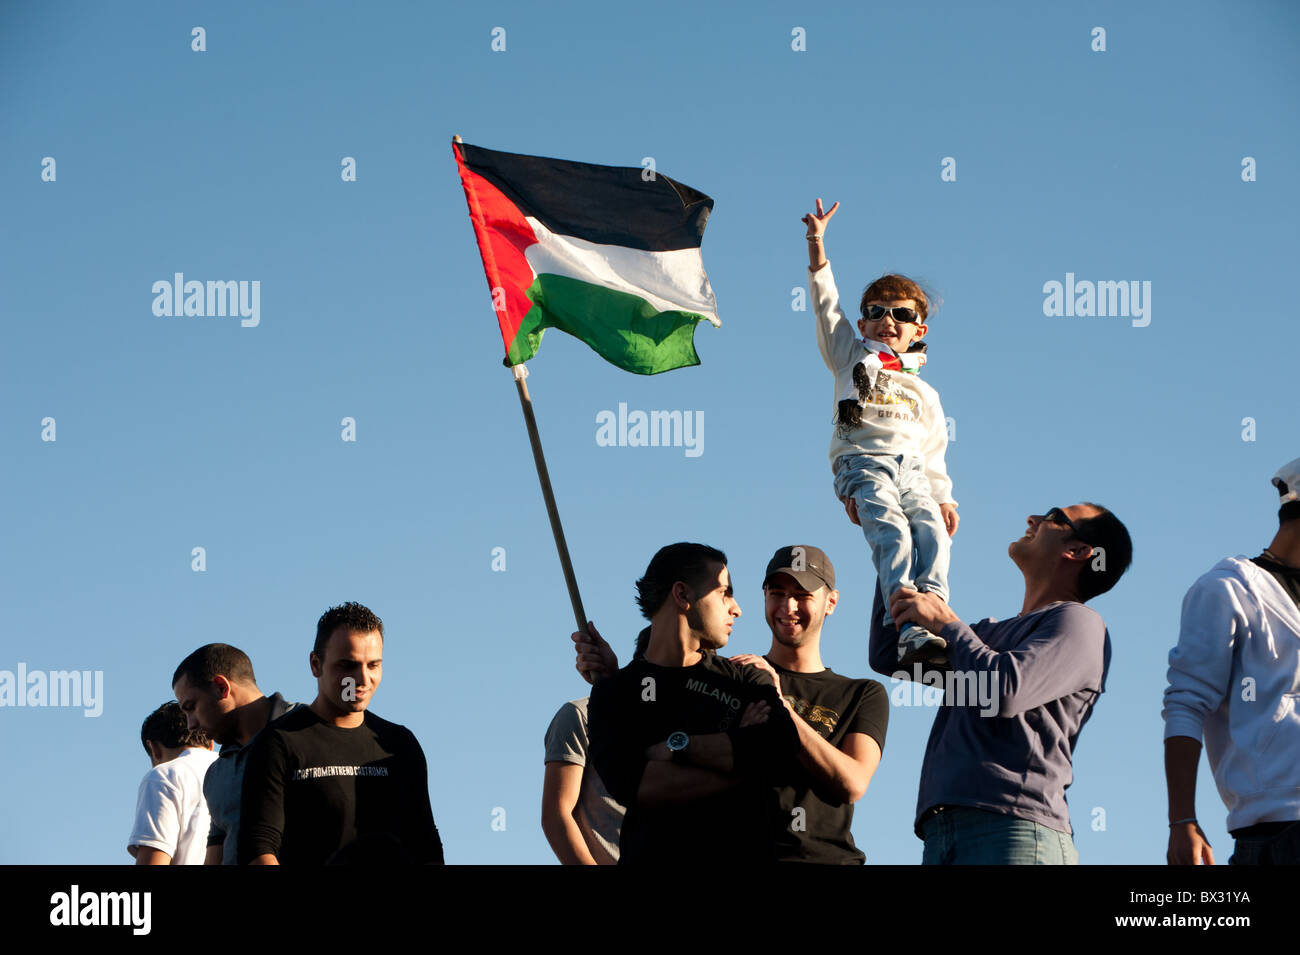 A Palestinian boy makes a peace sign as protesters fly the Palestinian flag at a rally against house demolitions - Stock Image